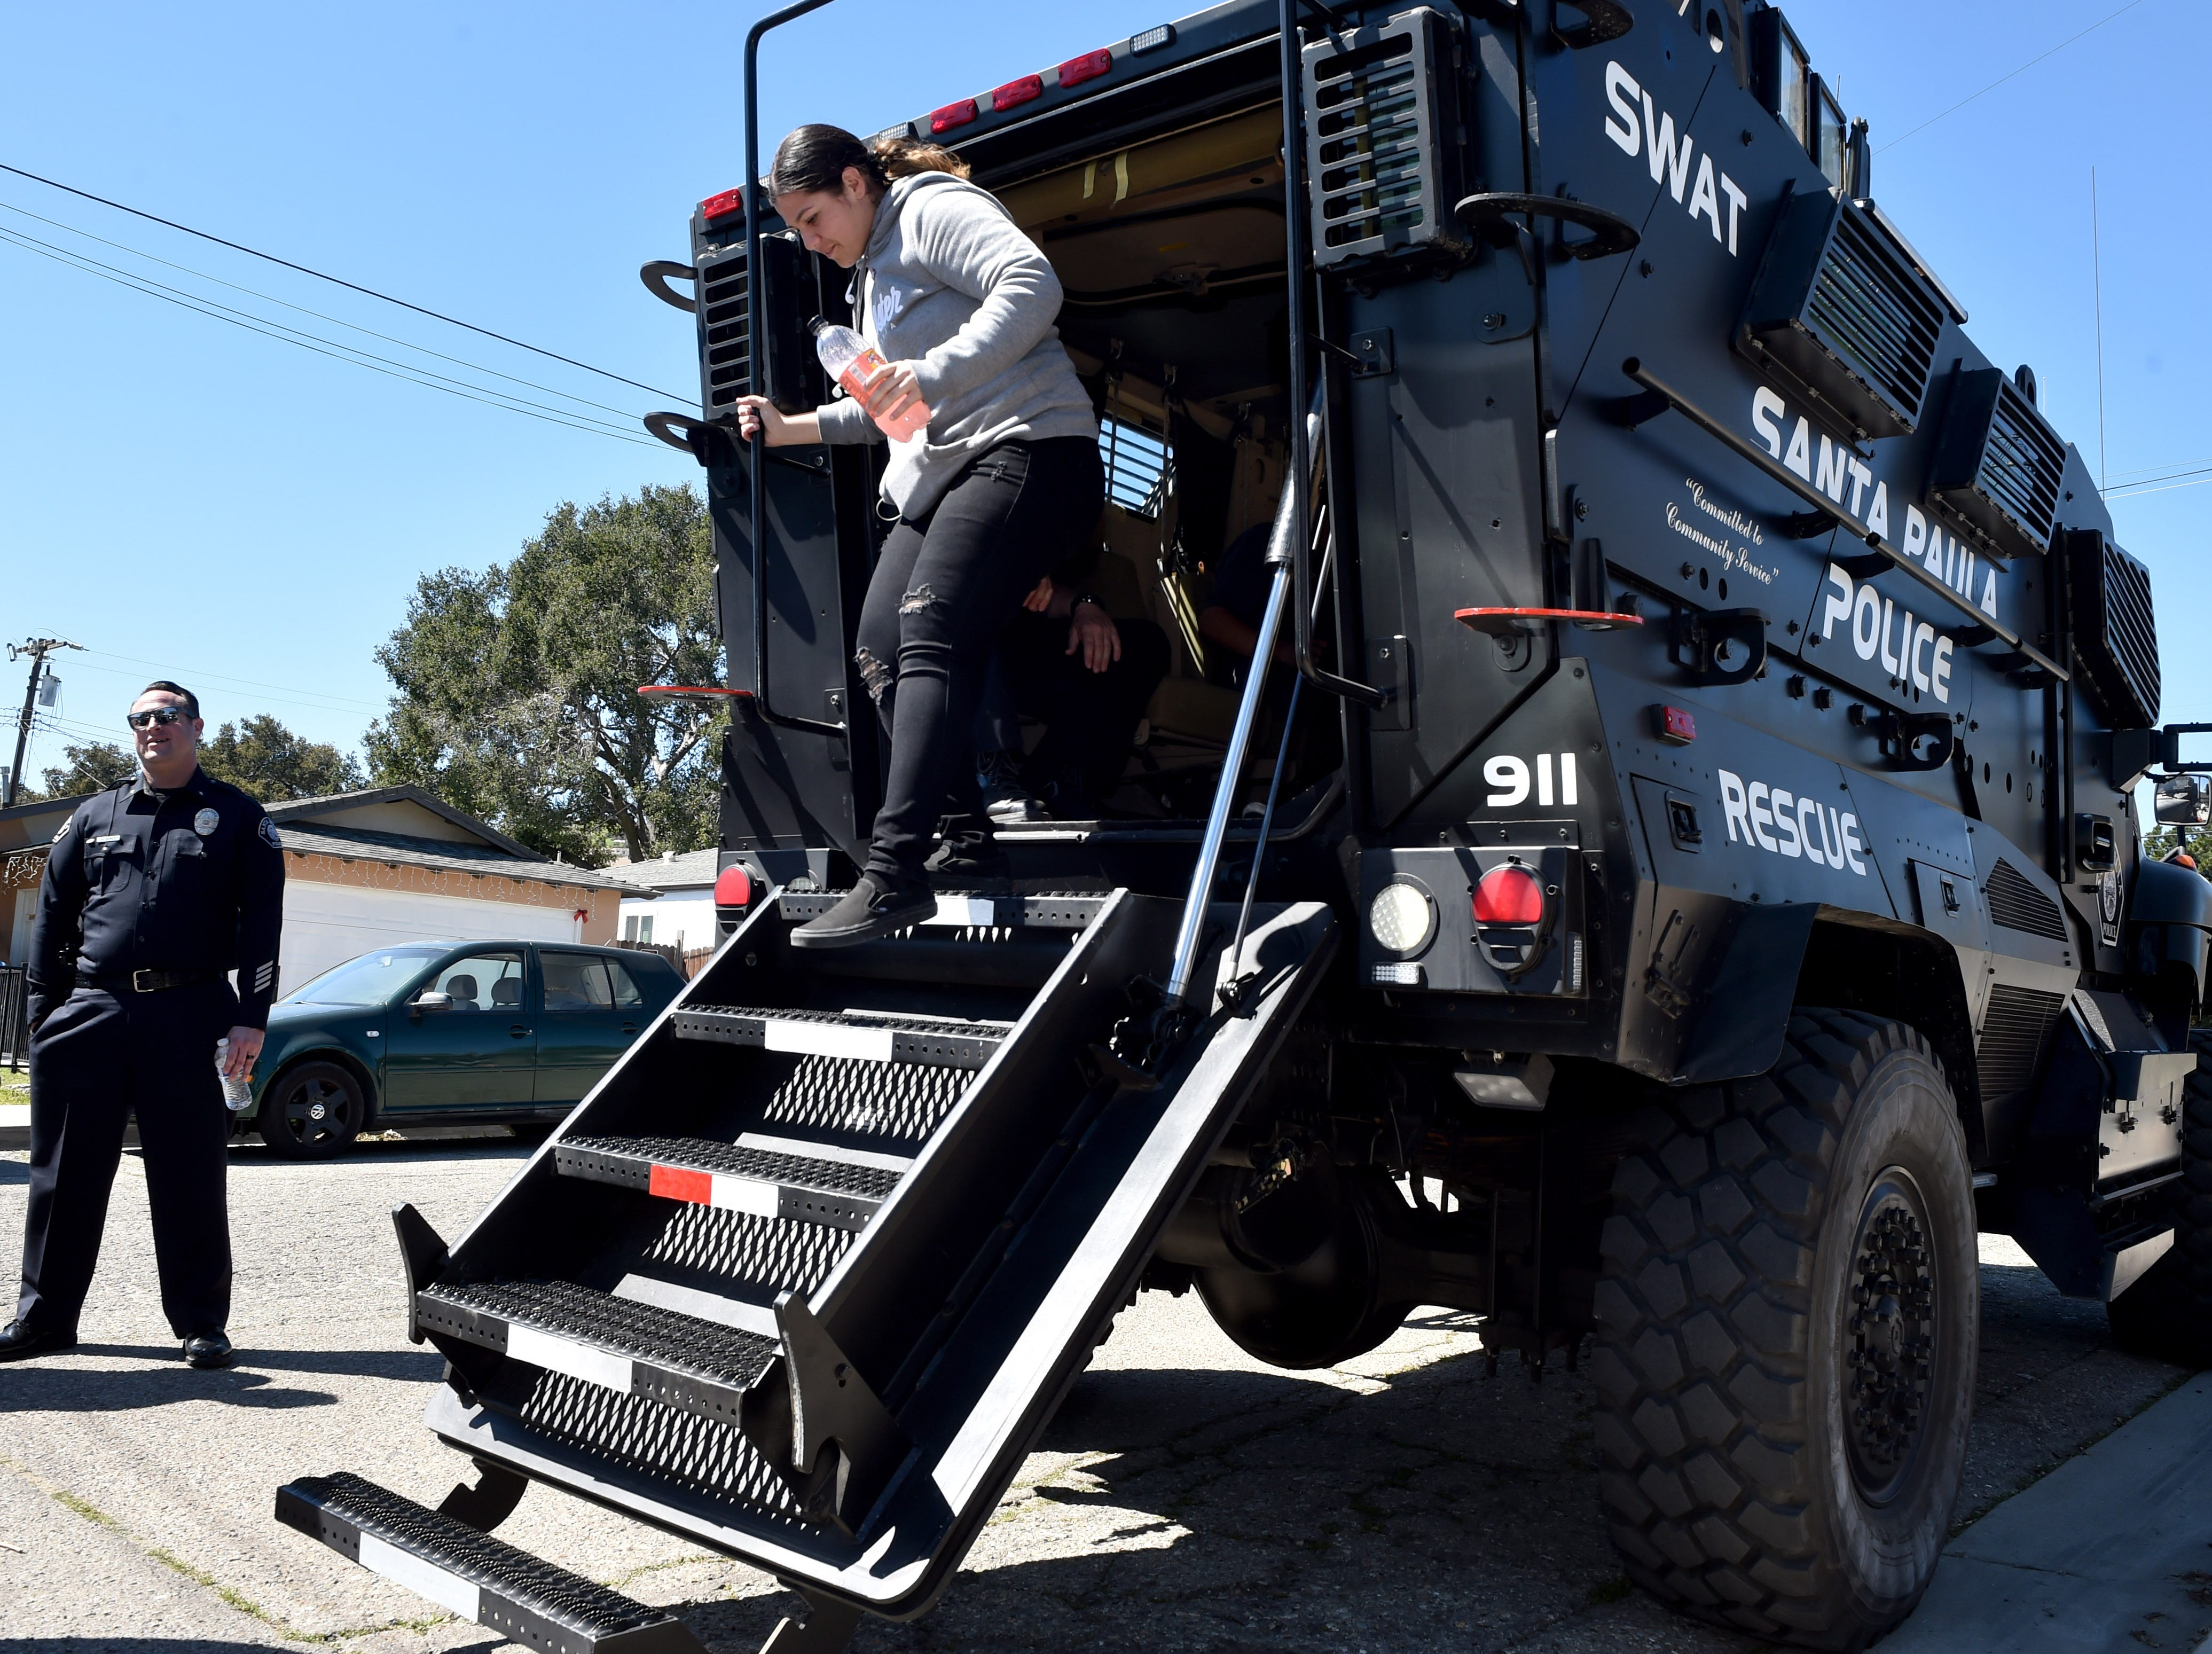 Navaeh Delgadillo, 16, climbs down after exploring a SWAT vehicle at the Santa Paula Police Department's youth center on Friday.